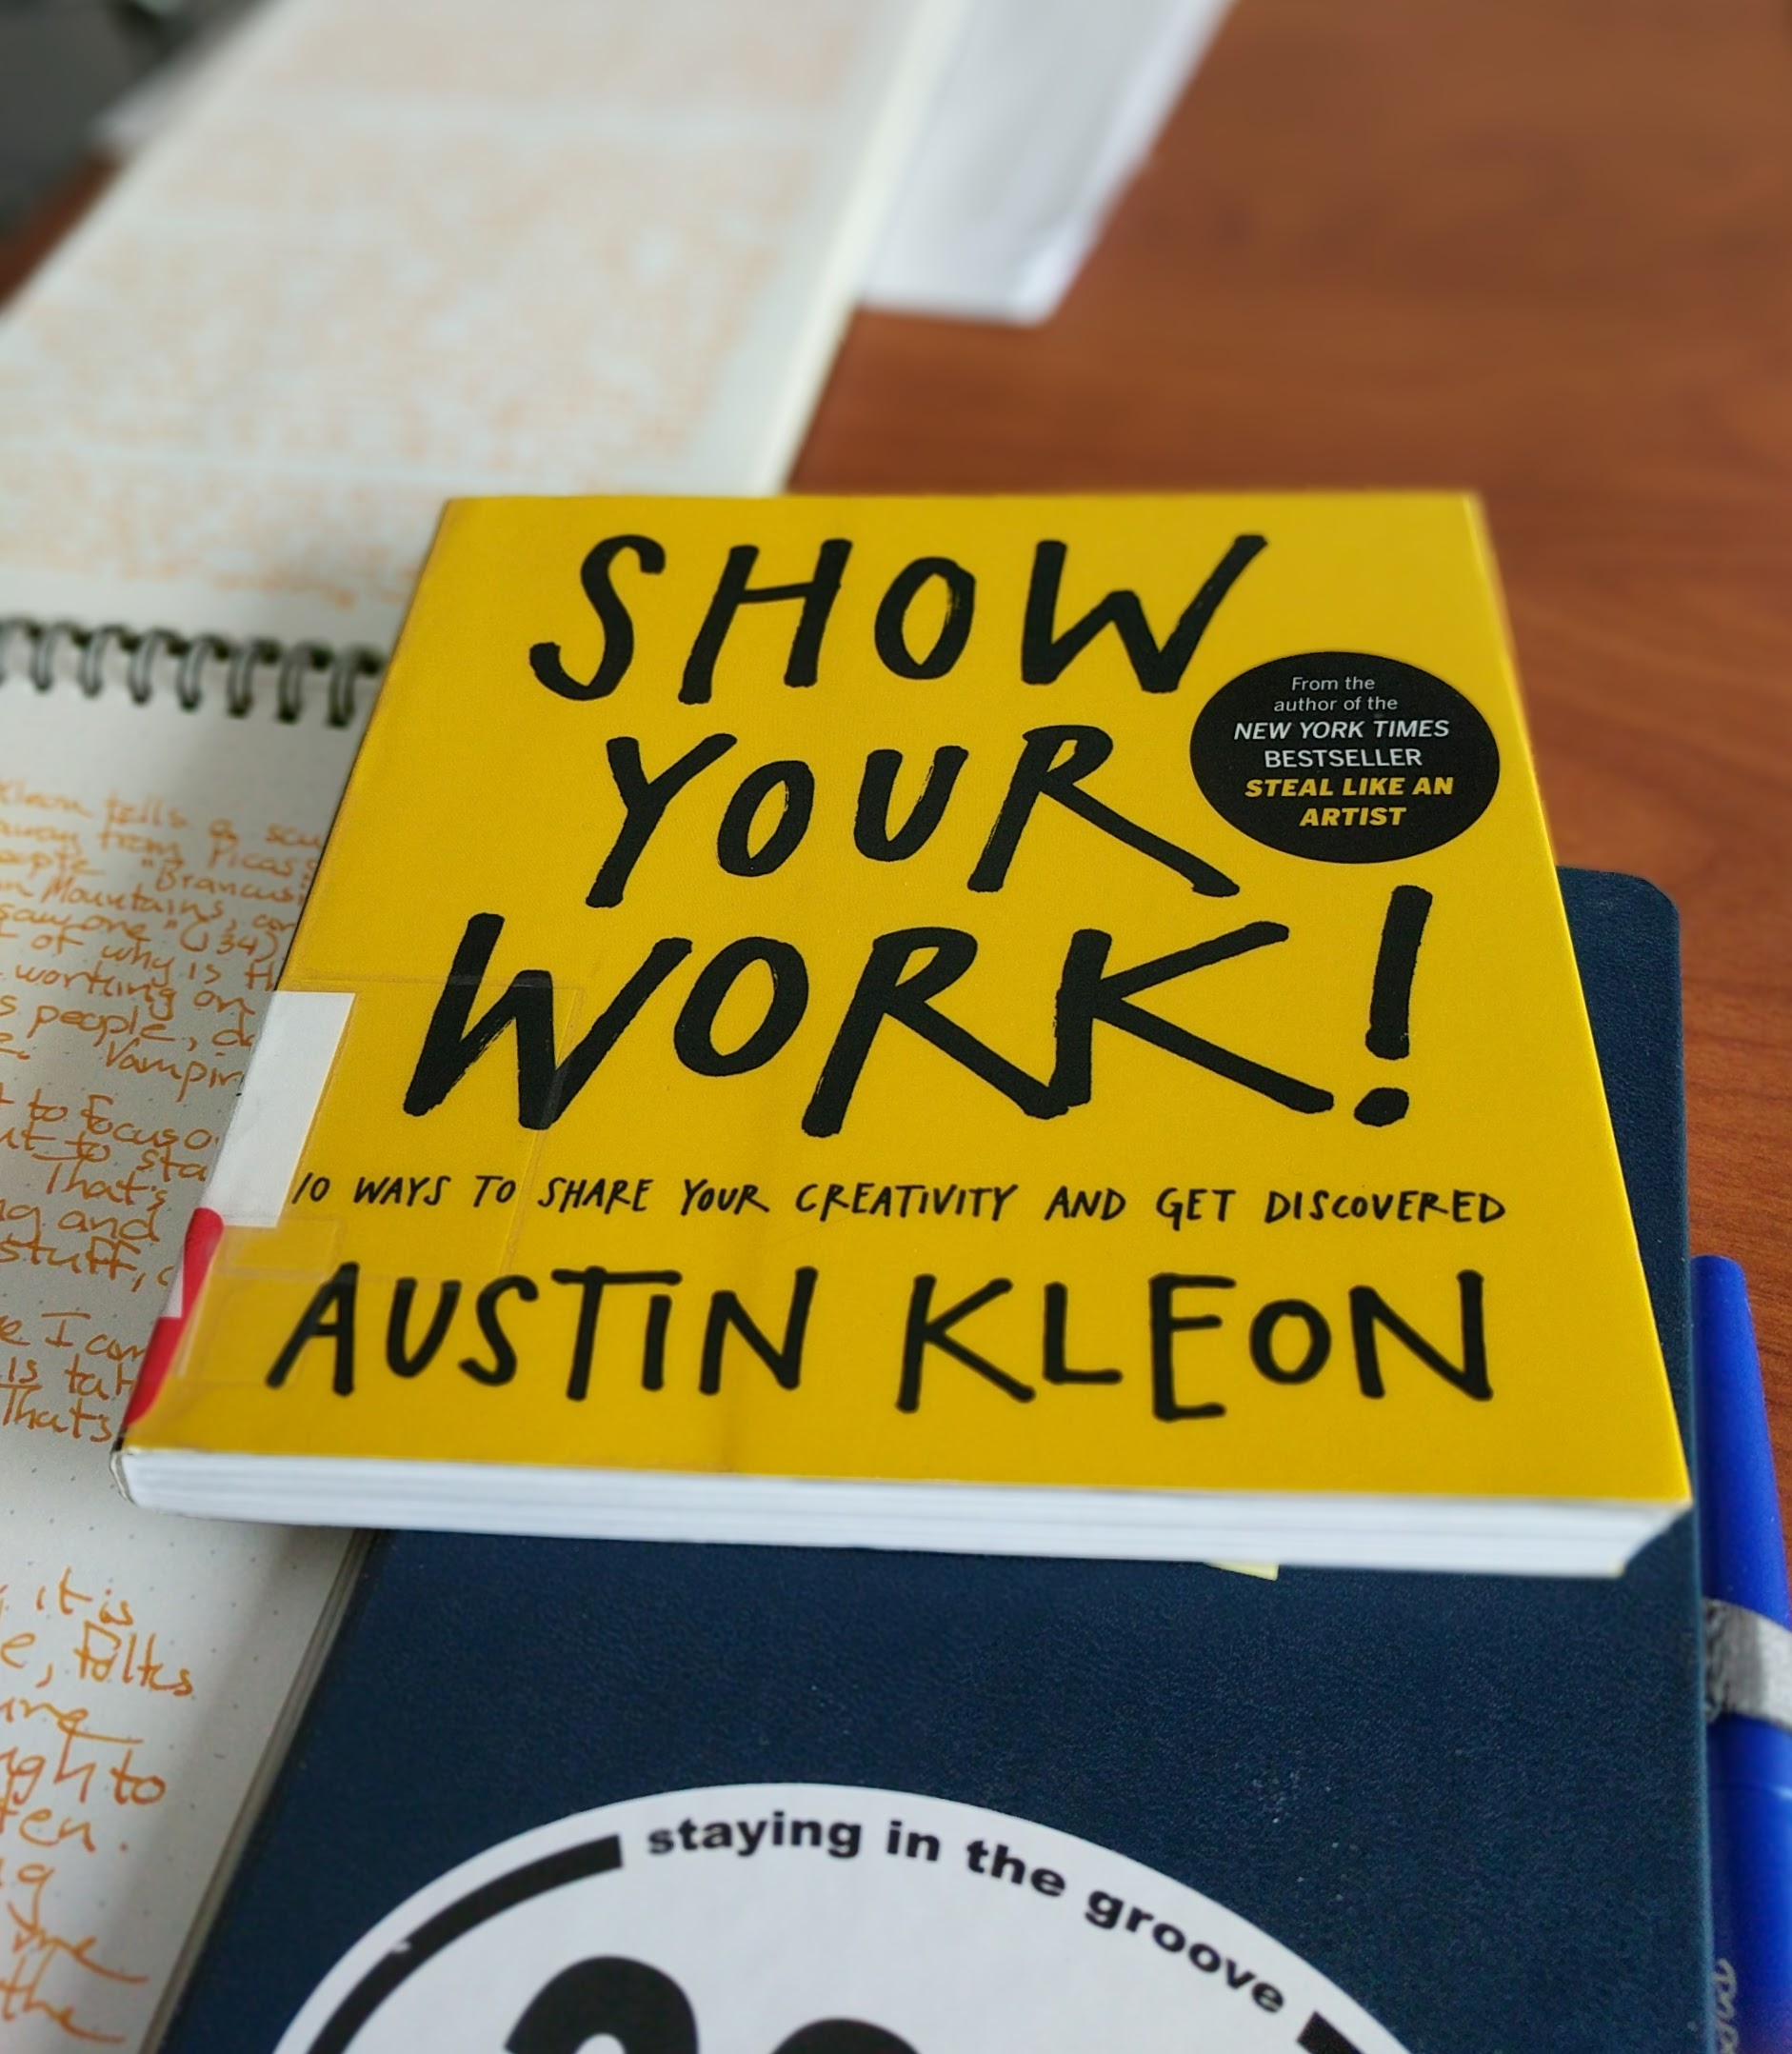 Austin KleonShow Your Work - This book got me started on this website. It has me creating more and sharing, showing my work. Austin Kleon is a proponent of doing the work, learning the craft, and sharing so people notice. I like his idea that no one gets famous by publishing anymore; they have to get famous in order to publish. I don't know that I'll ever be famous, but I like doing things a person would do to become famous. I'm working on my craft, publishing, and listening to smart people who create. Austin Kleon is a smart person who creates. He also gives much more than he gets. That's a part of this too.The book is so good that I'm buying a copy.